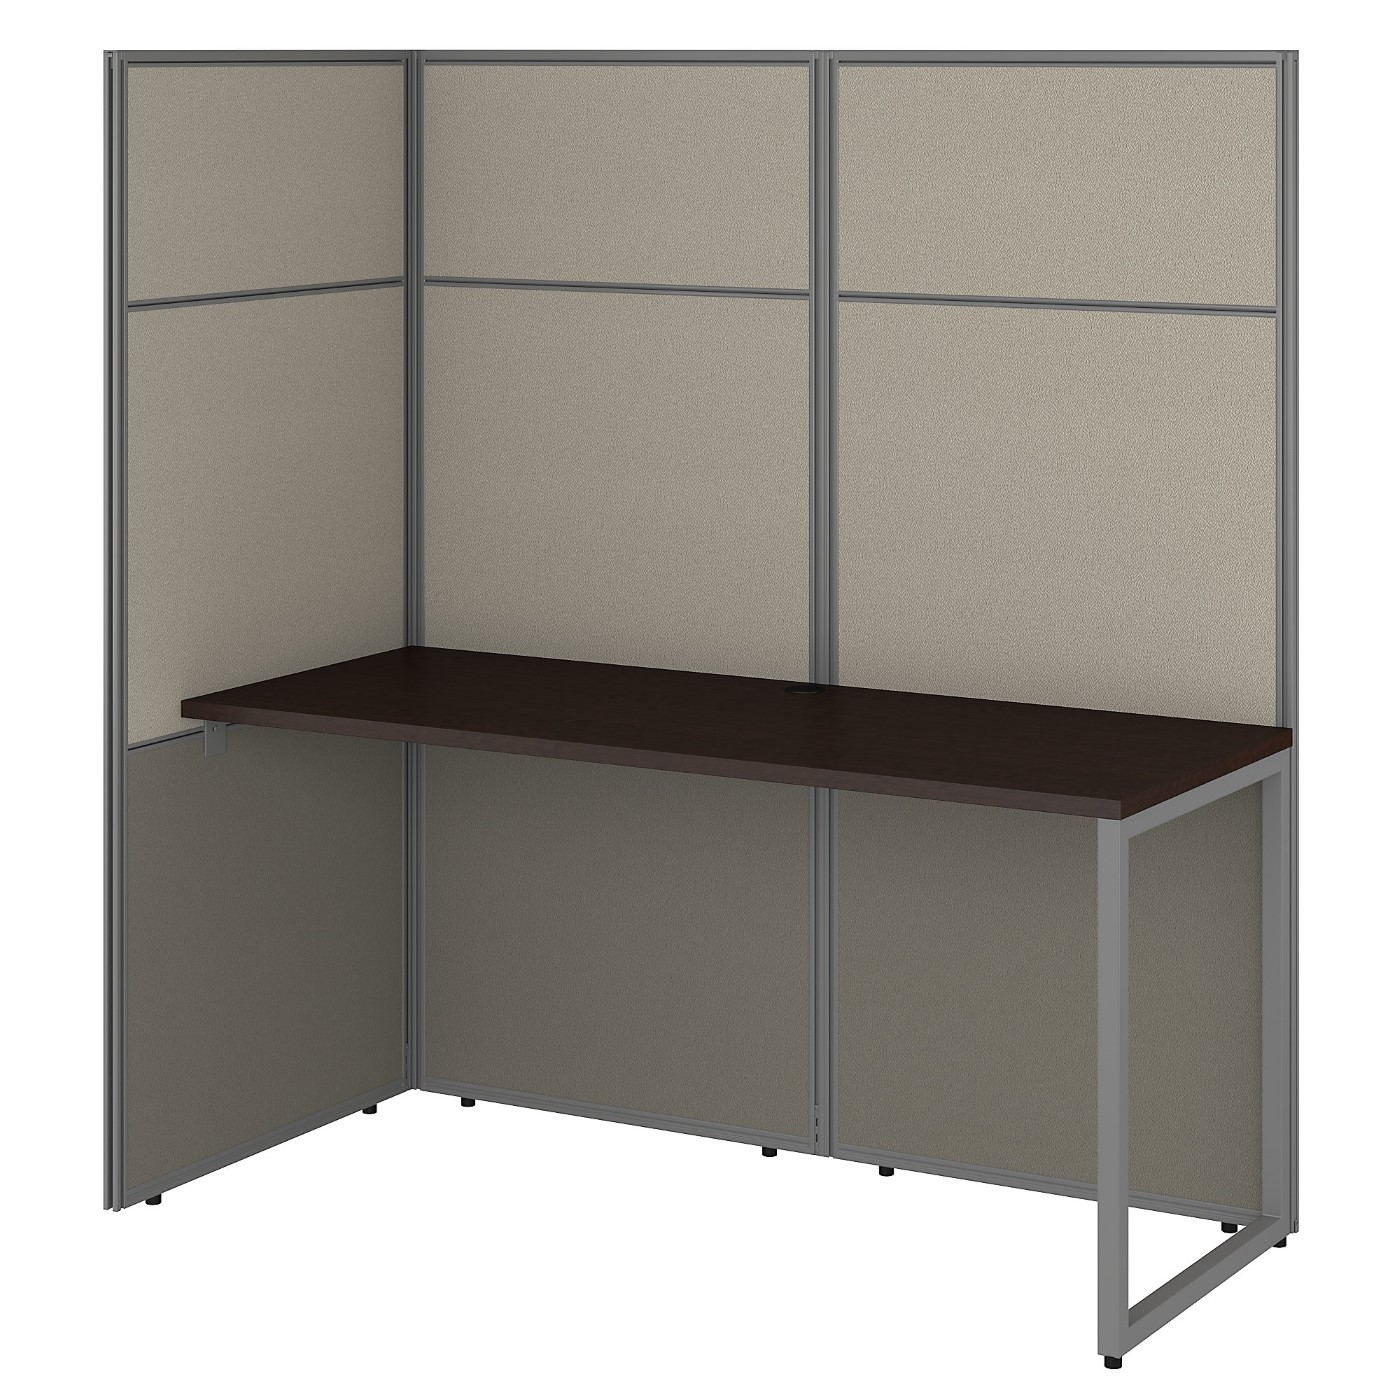 BUSH BUSINESS FURNITURE EASY OFFICE 60W CUBICLE DESK WORKSTATION WITH 66H OPEN PANELS. FREE SHIPPING 30H x 72L x 72W.  SALE DEDUCT 10% MORE ENTER '10percent' IN COUPON CODE BOX WHILE CHECKING OUT. ENDS 5-31-20.